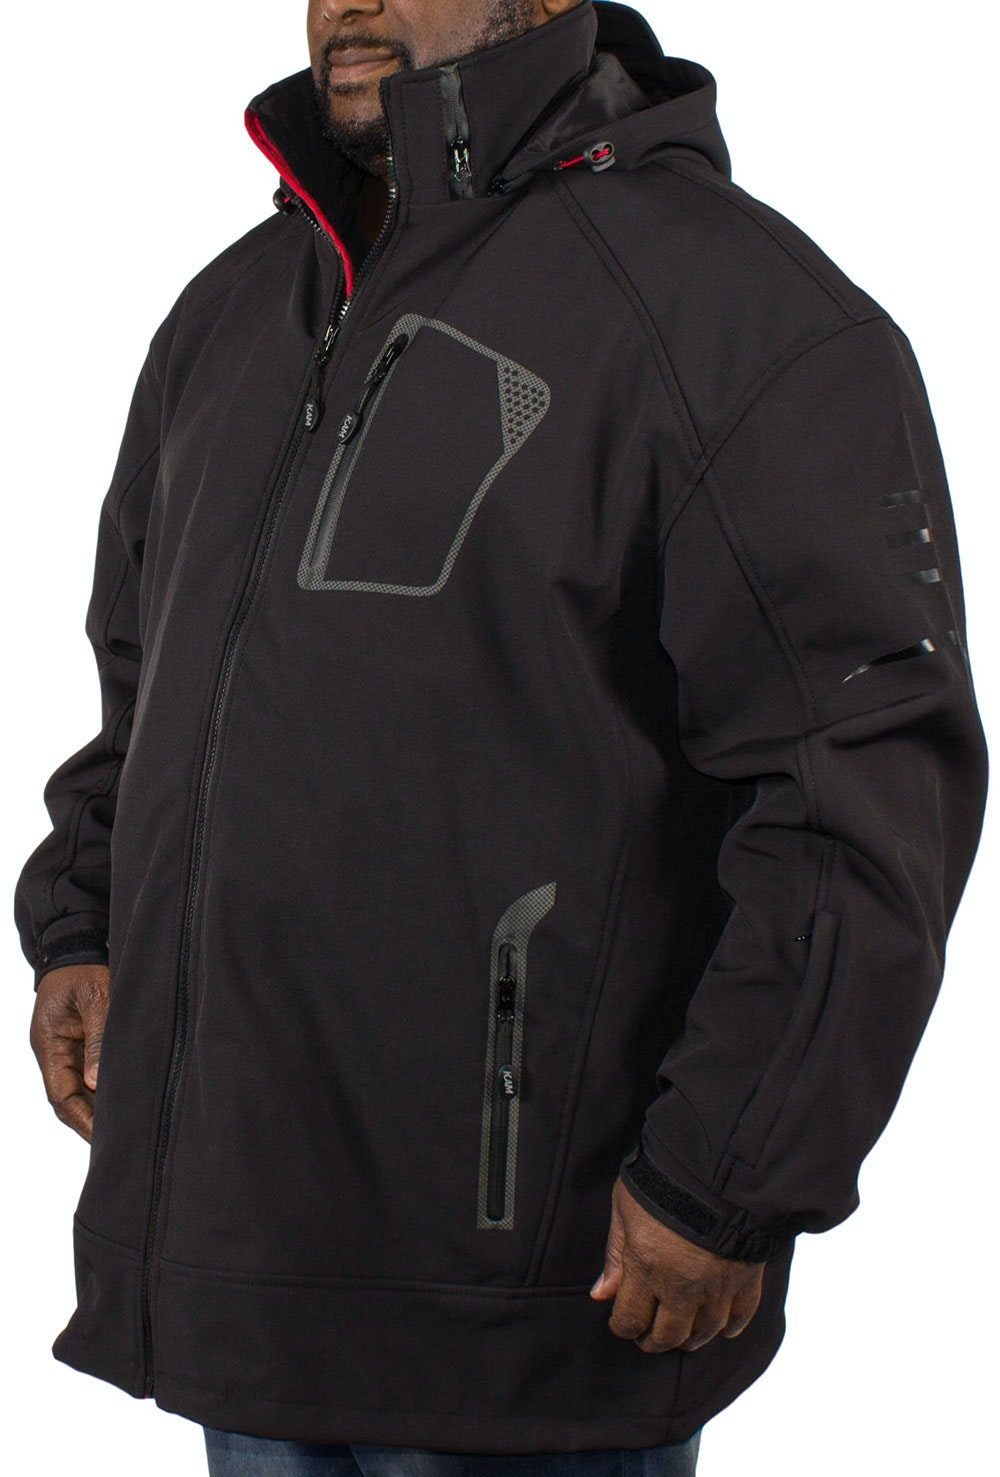 KAM Soft Shell Performance Jacket Black